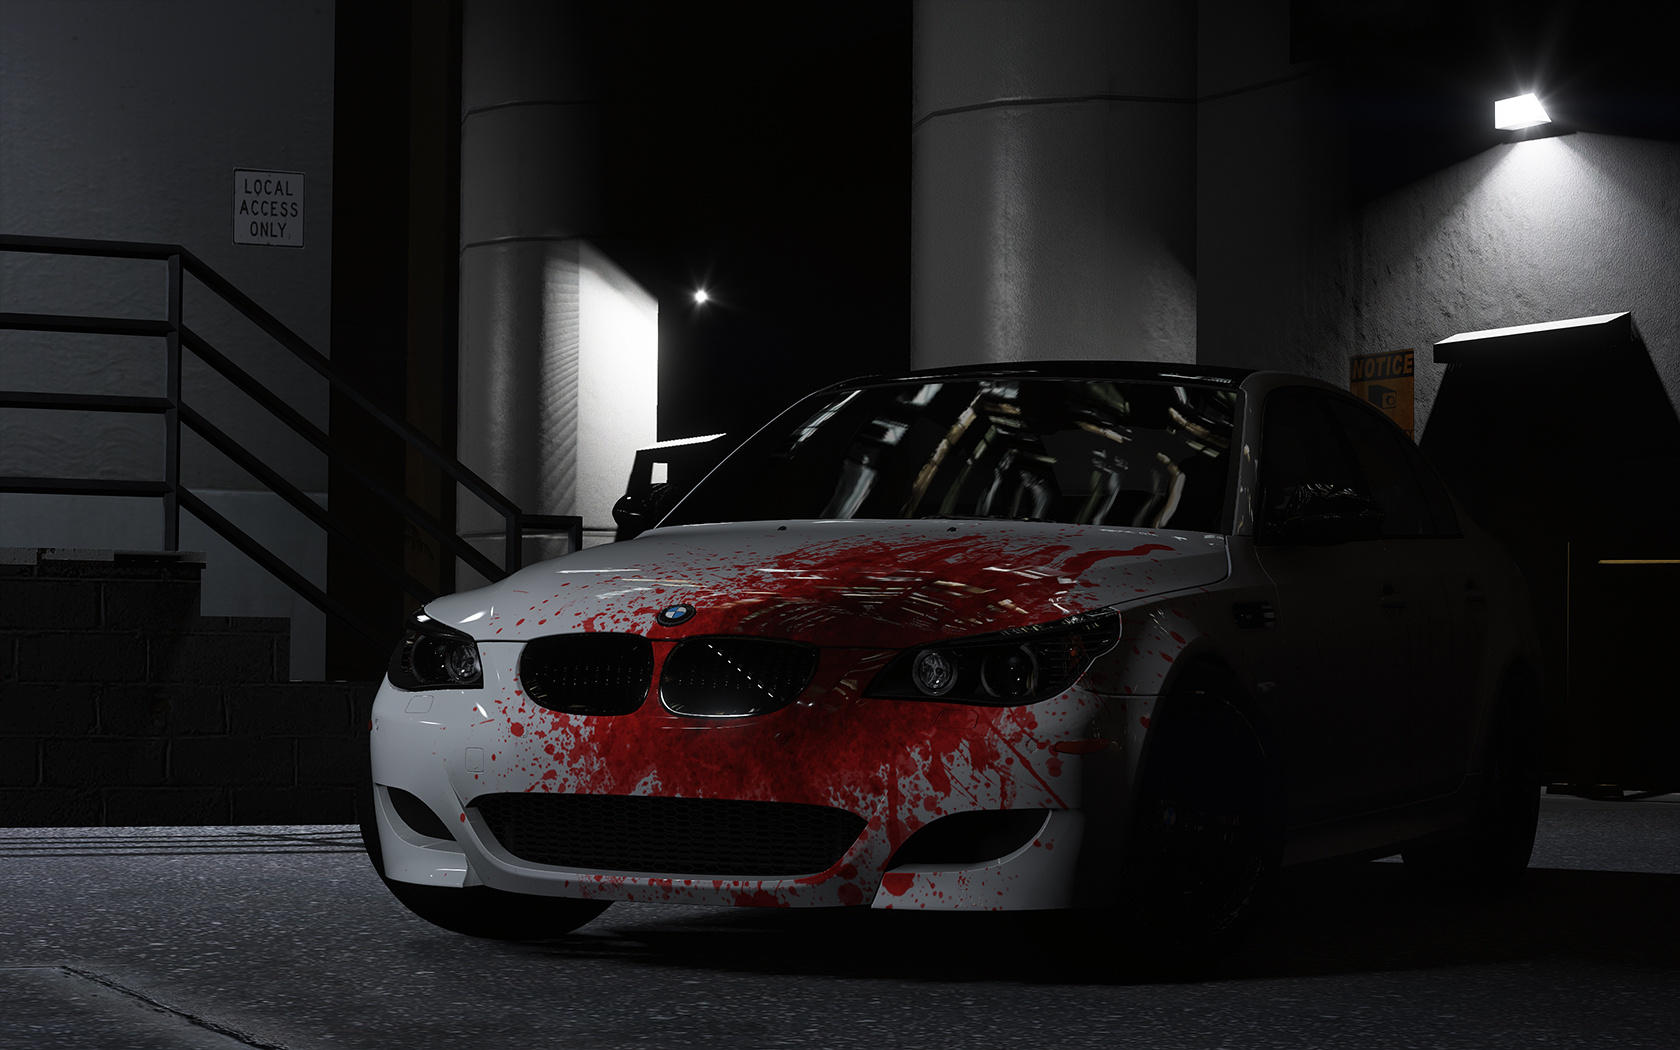 2009 Bmw M5 E60 Blood Vinyl Gta5 Mods Com